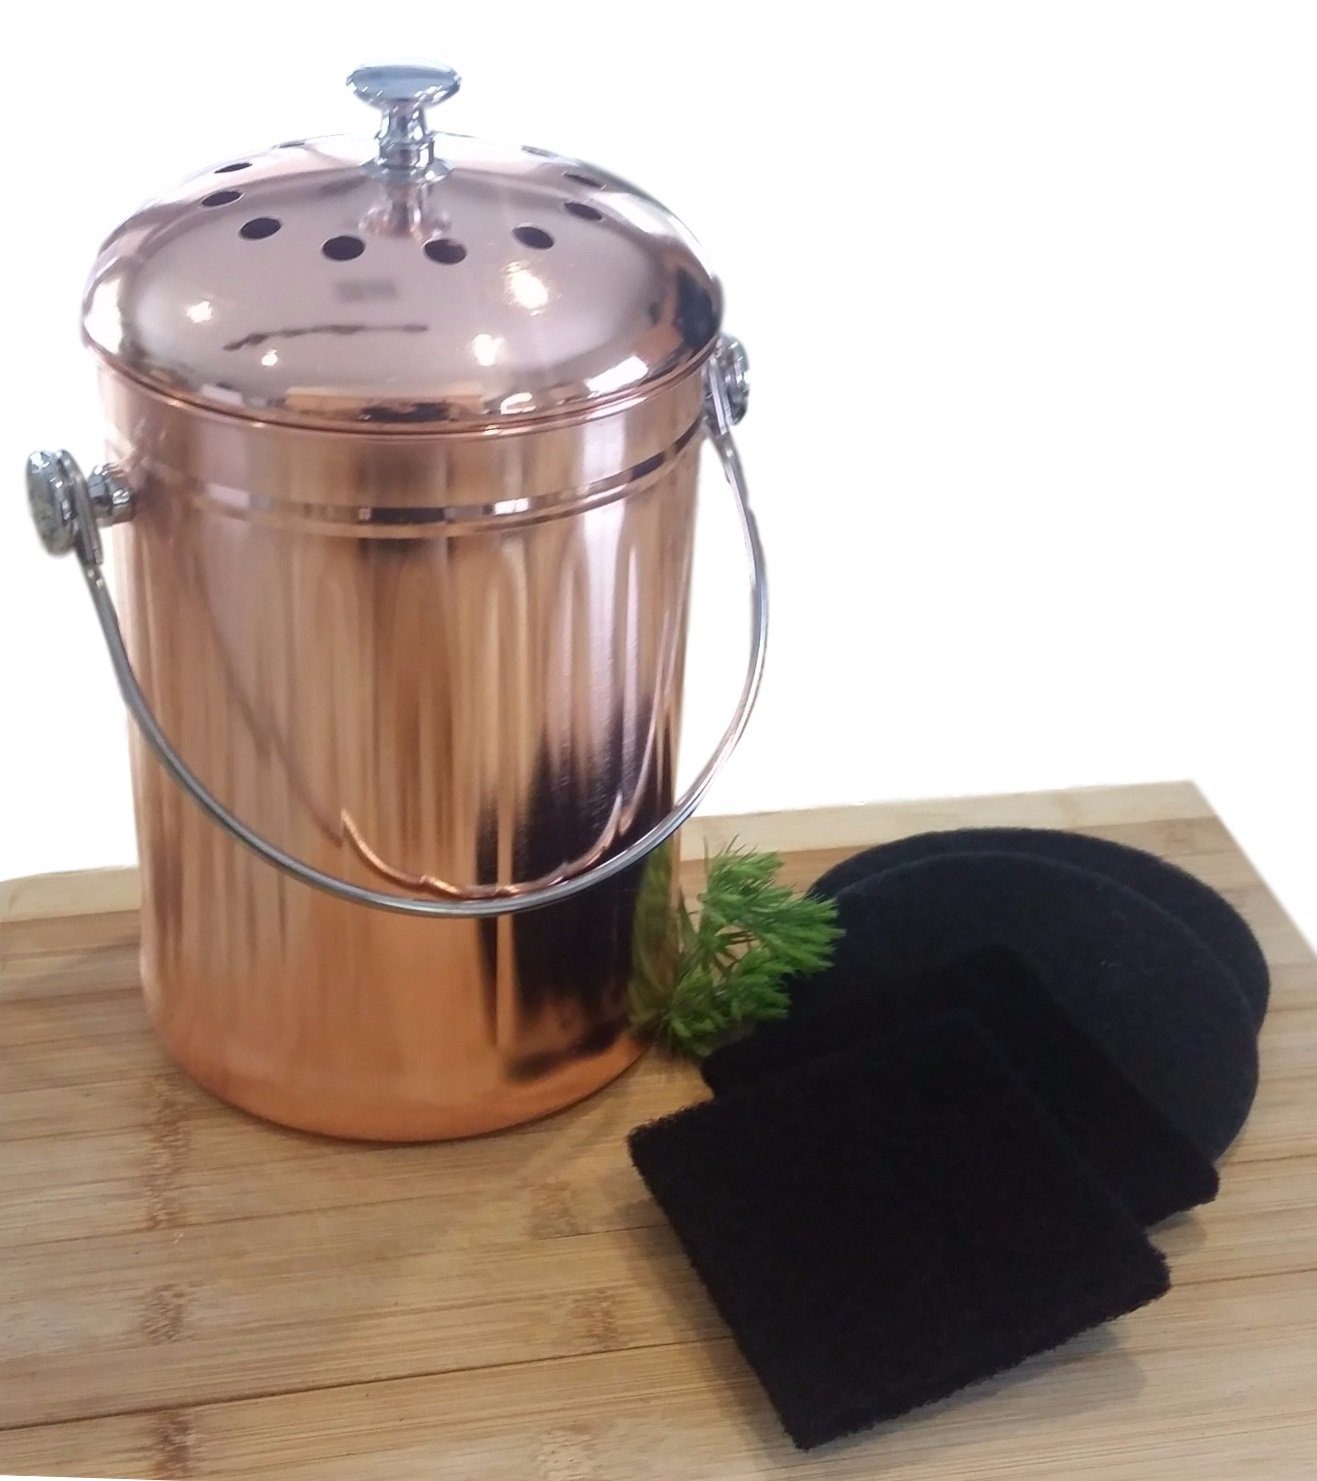 Compost Pail Bin Bucket for Indoor Kitchen Countertop - Copper Coated Stainless Steel 1 Gallon - BONUS Includes 2 Sets of Dual Charcoal Filters by Goldsol Brands (Image #1)